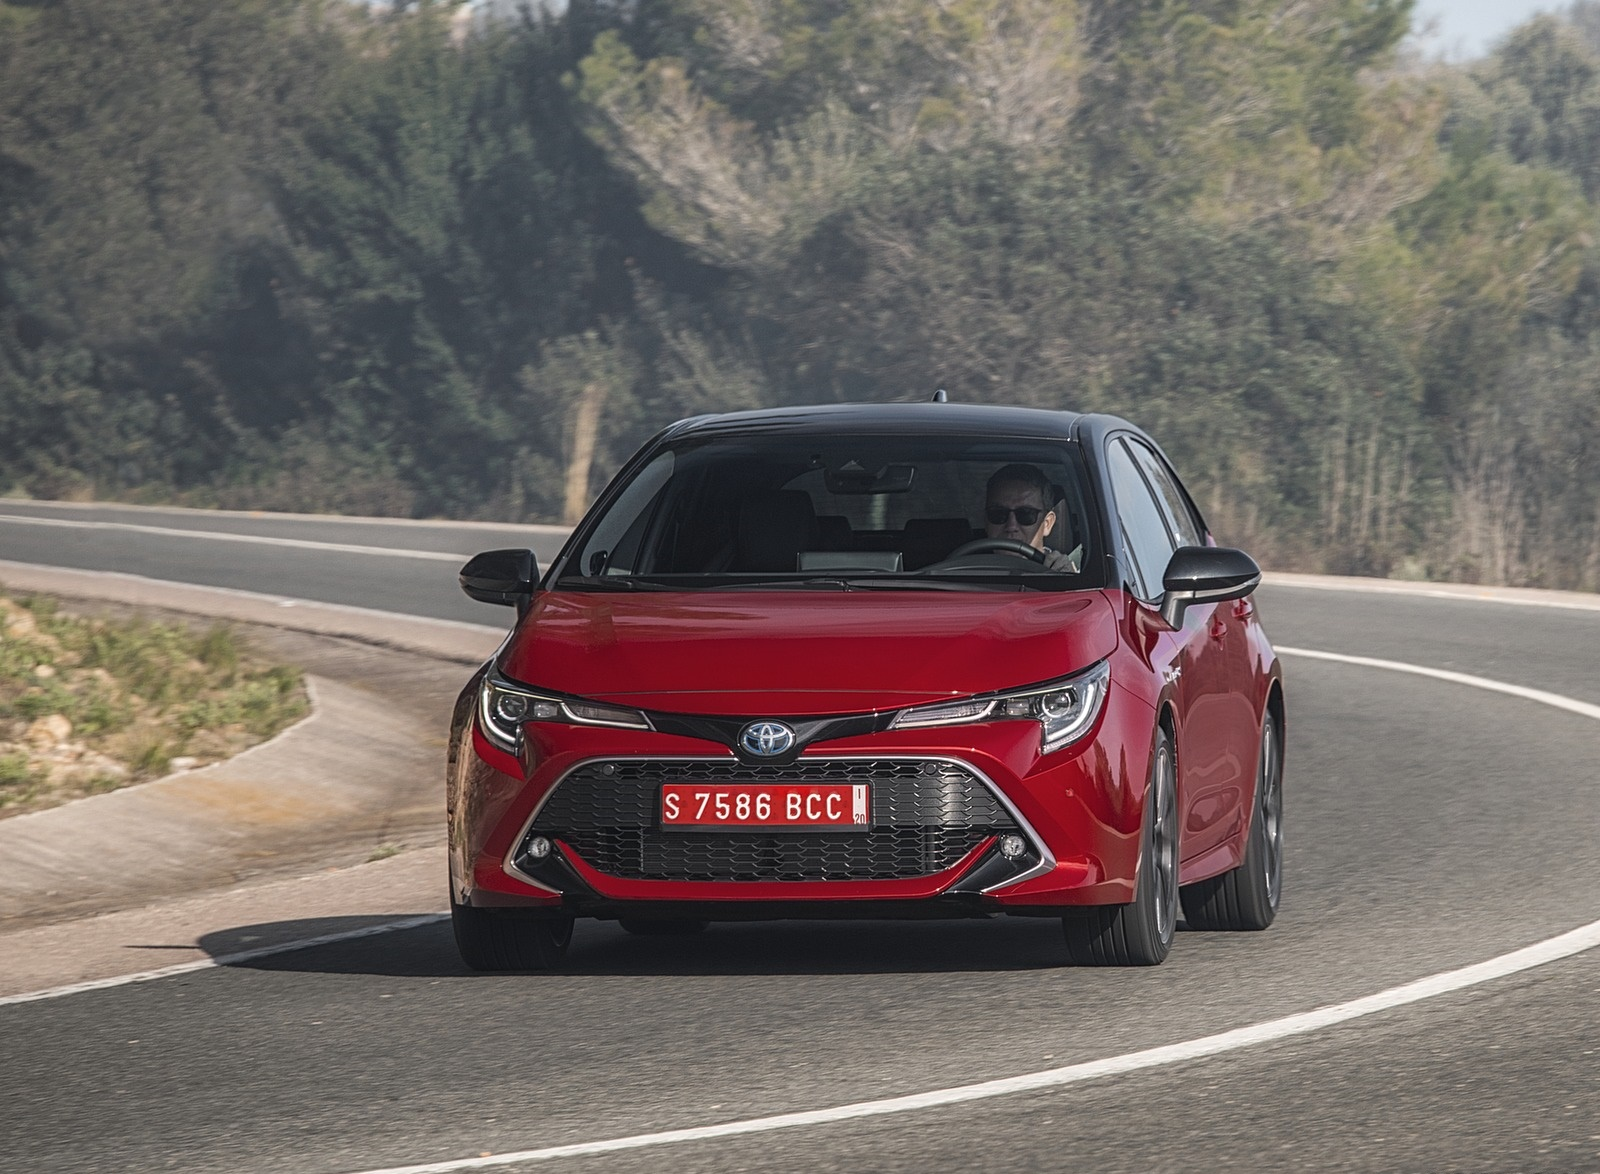 2019 Toyota Corolla Hatchback Hybrid 2.0L Red bitone (EU-Spec) Front Wallpapers (3)